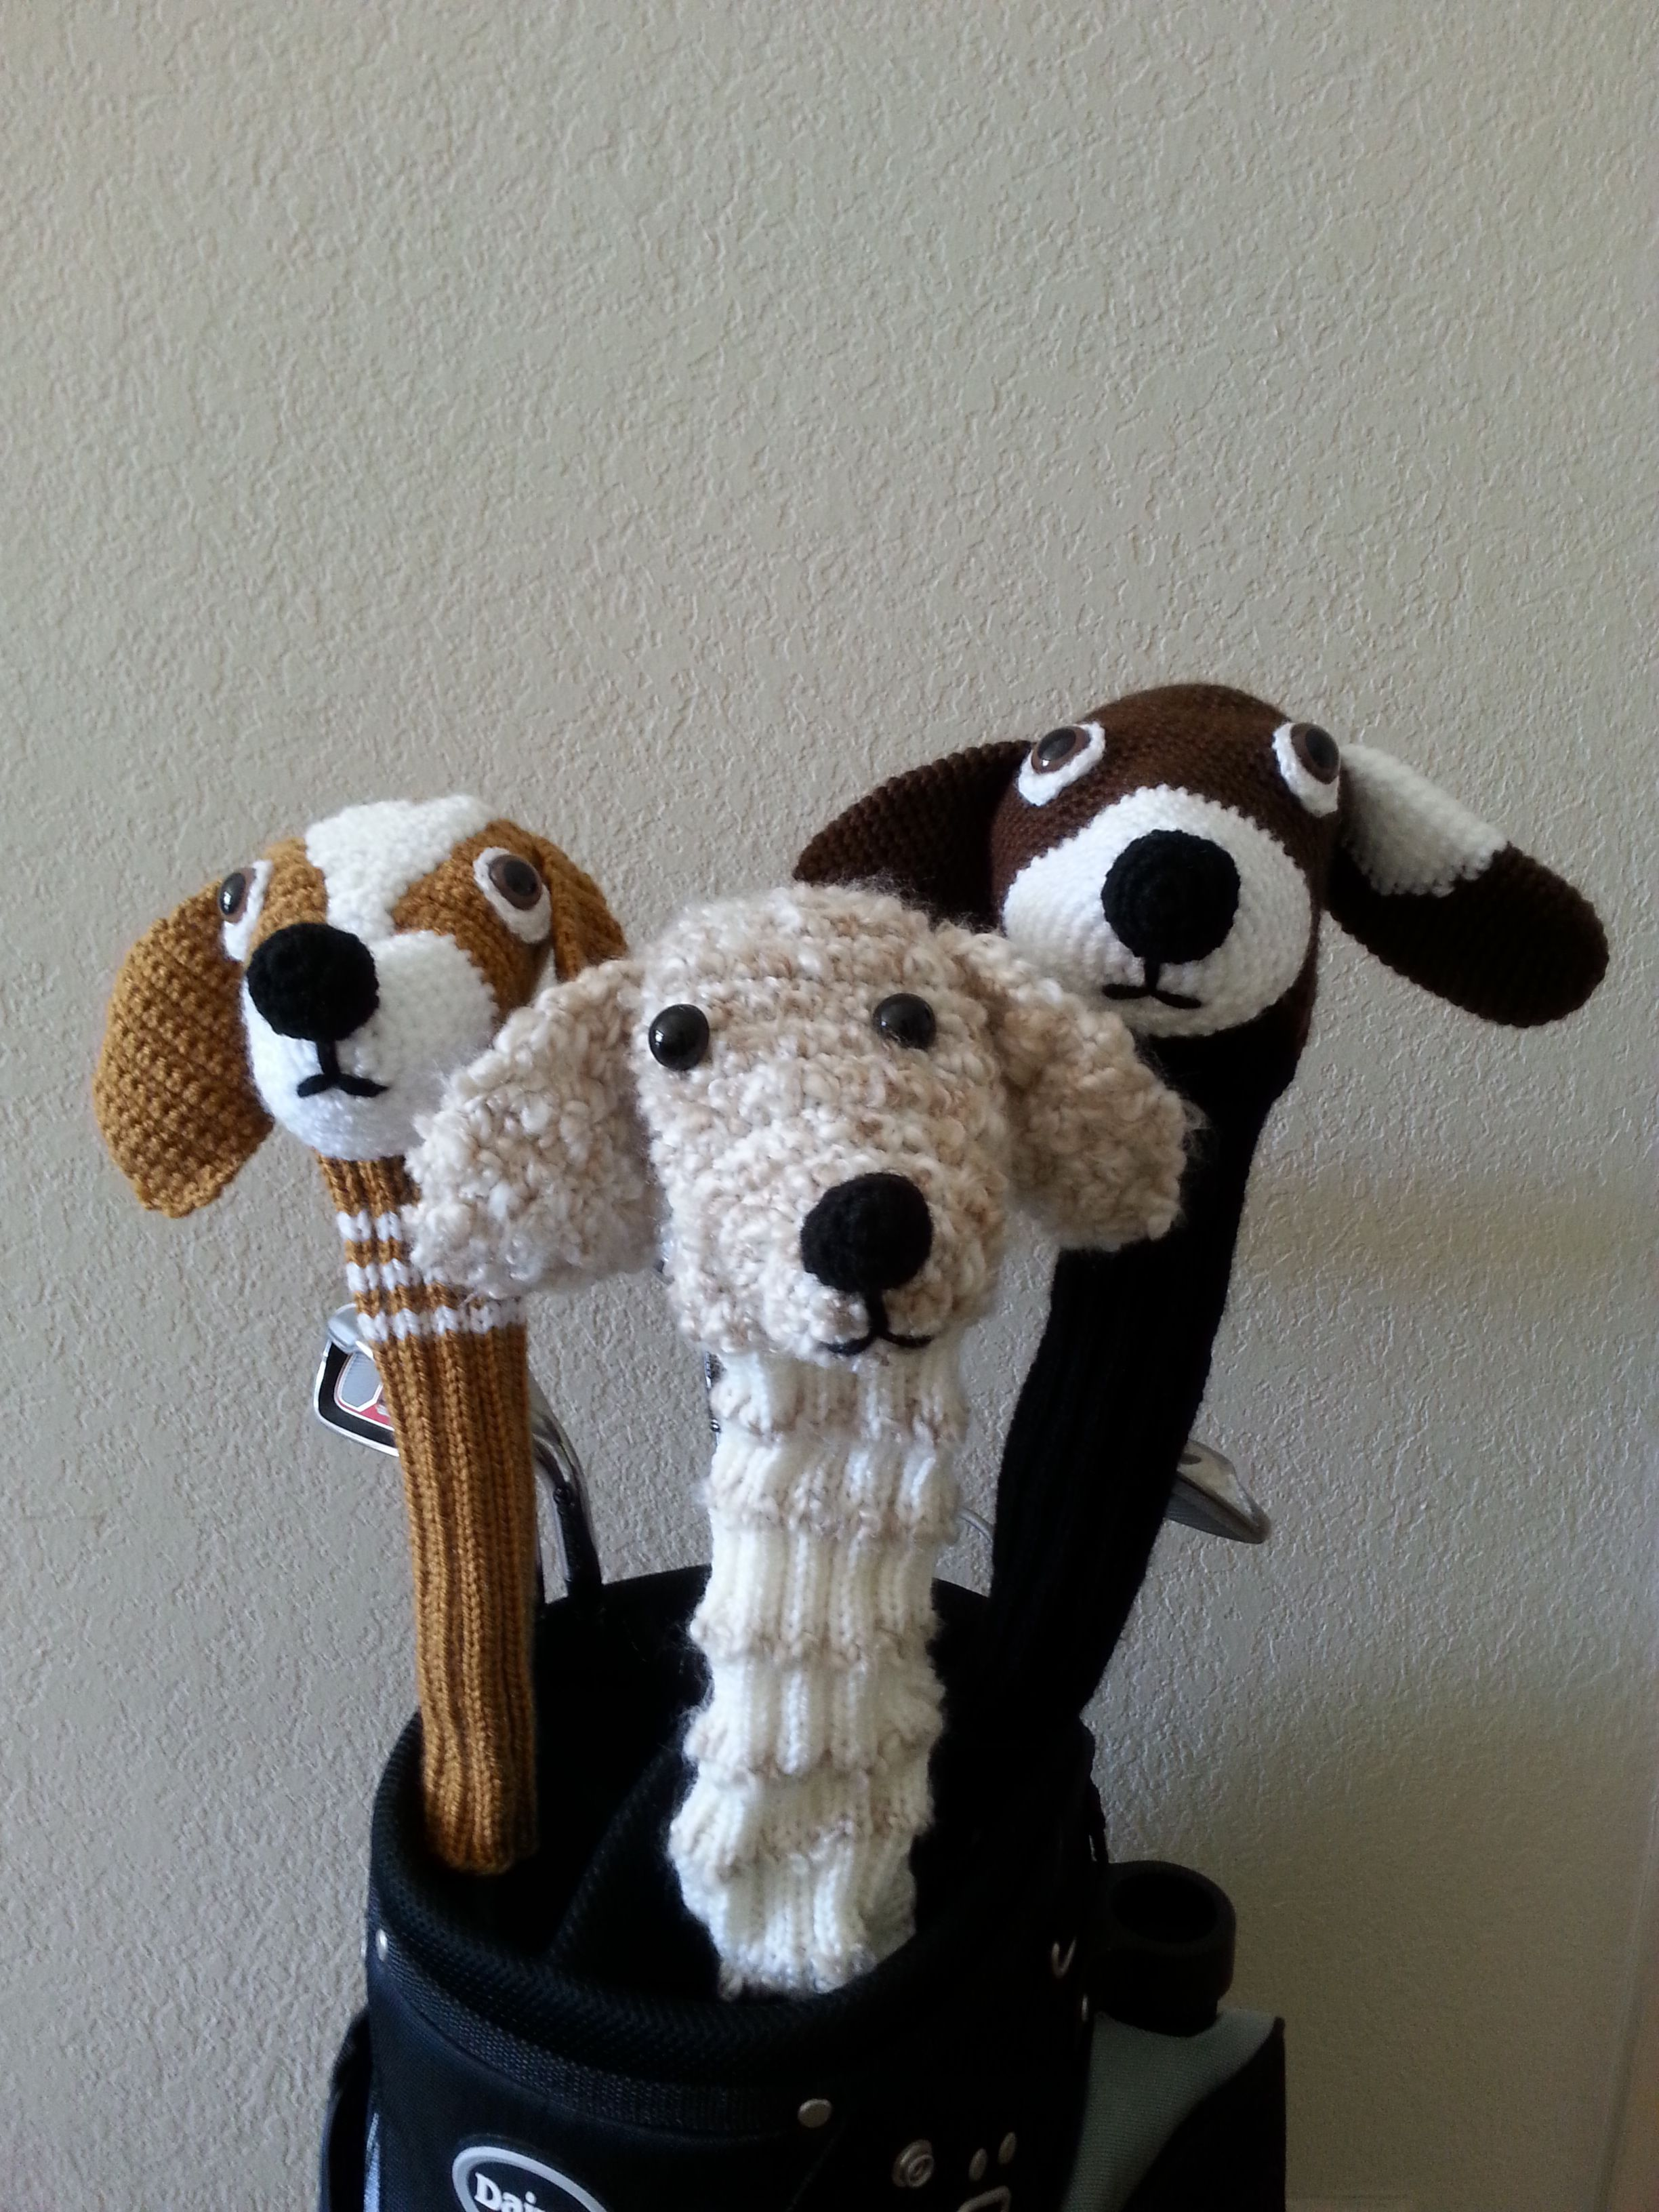 Dog knitted golf club covers | Crocheted /knitted Golf club covers ...